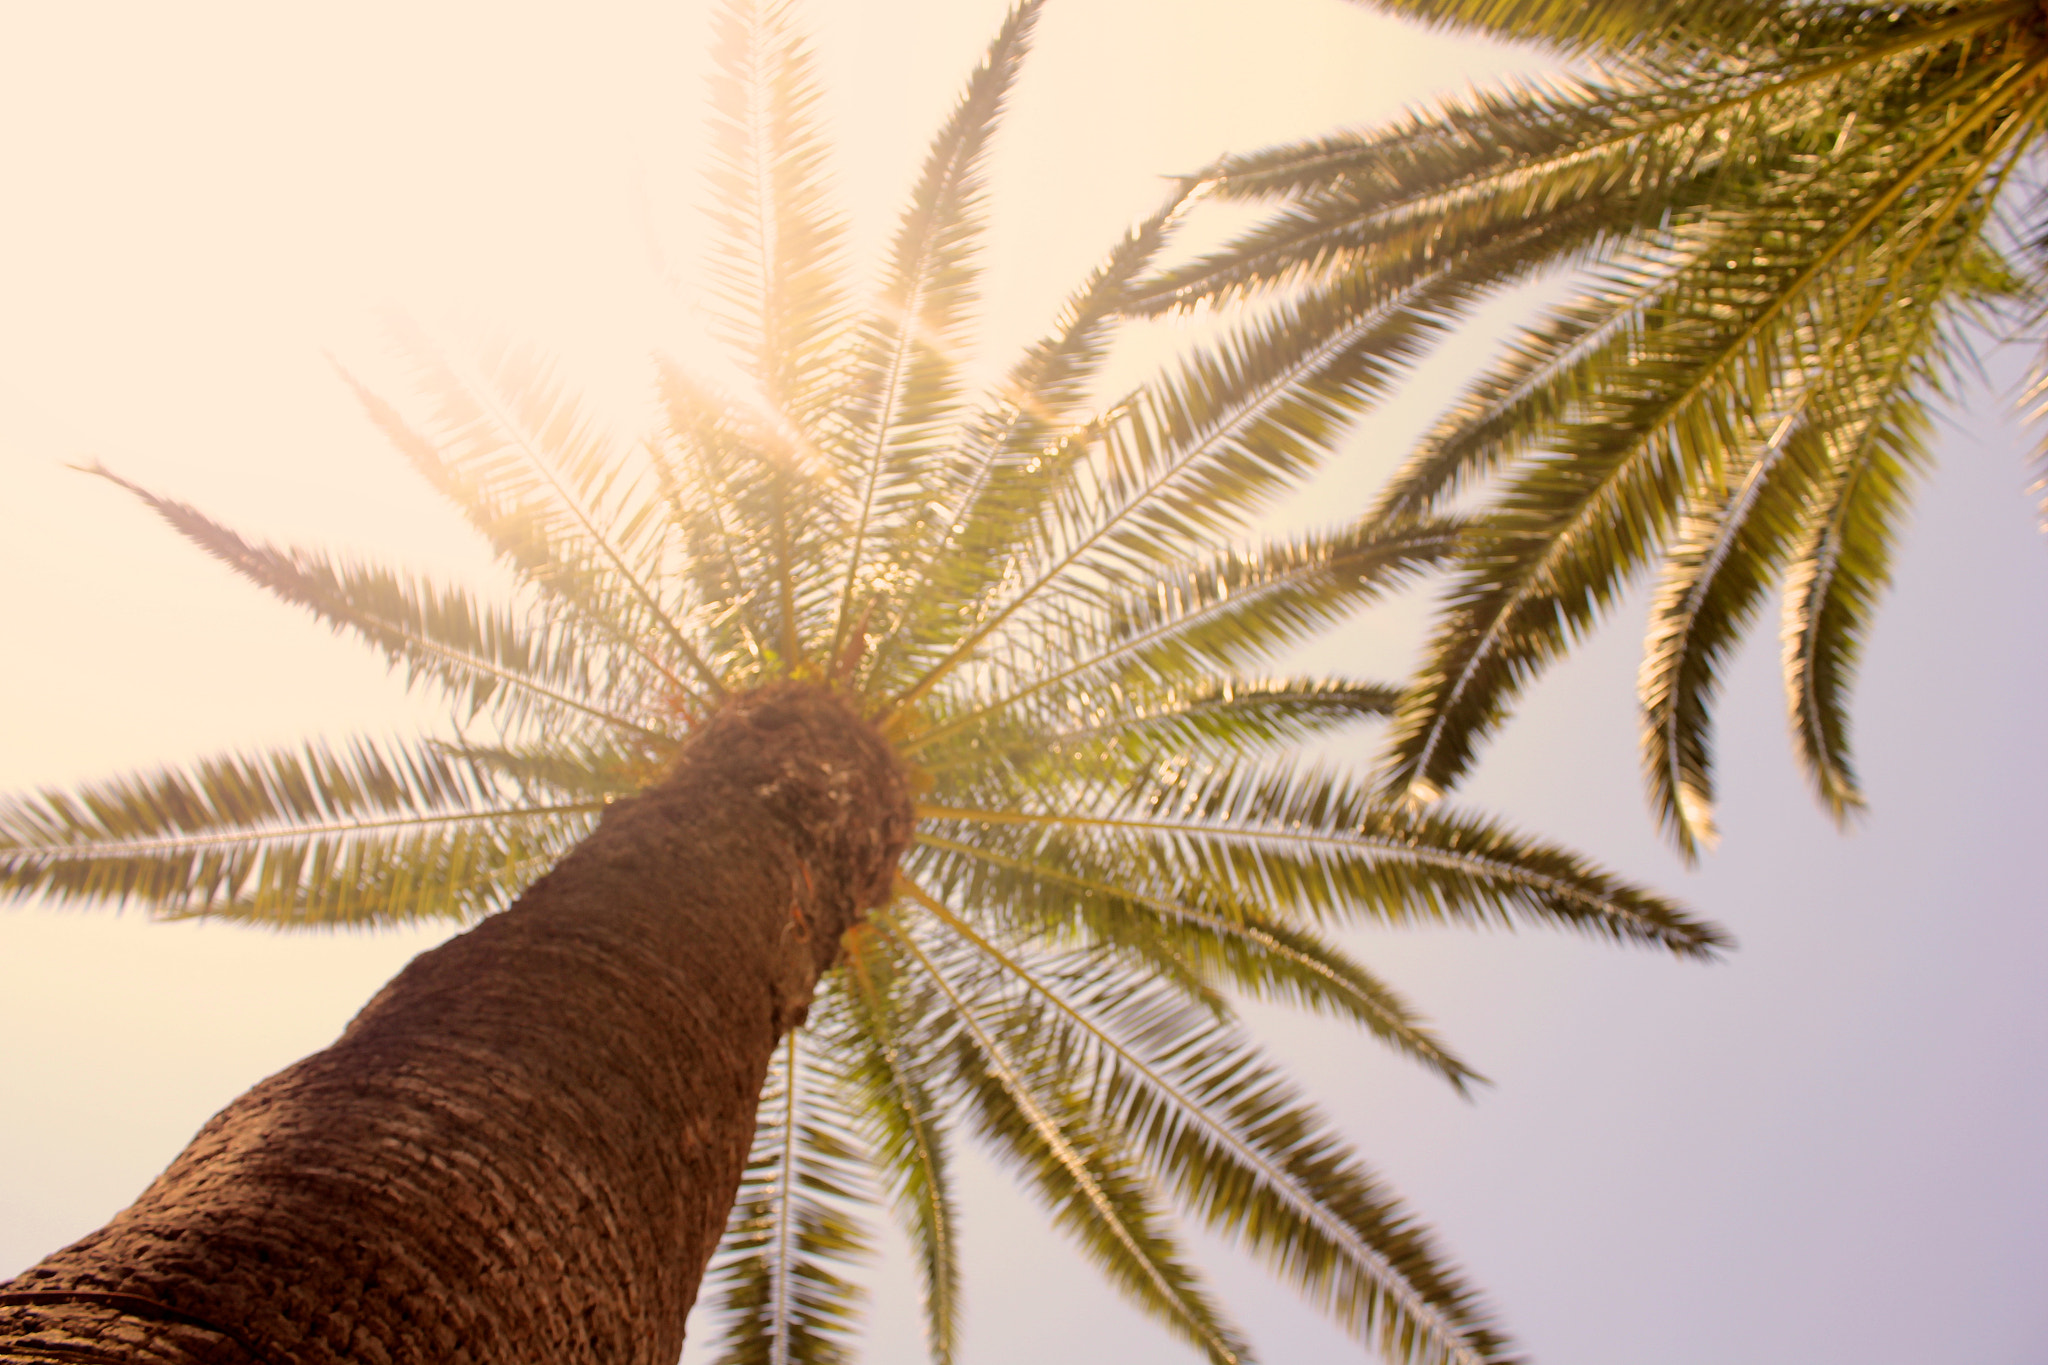 Photograph Palm trees in Algeria Center by Abd  Driss on 500px